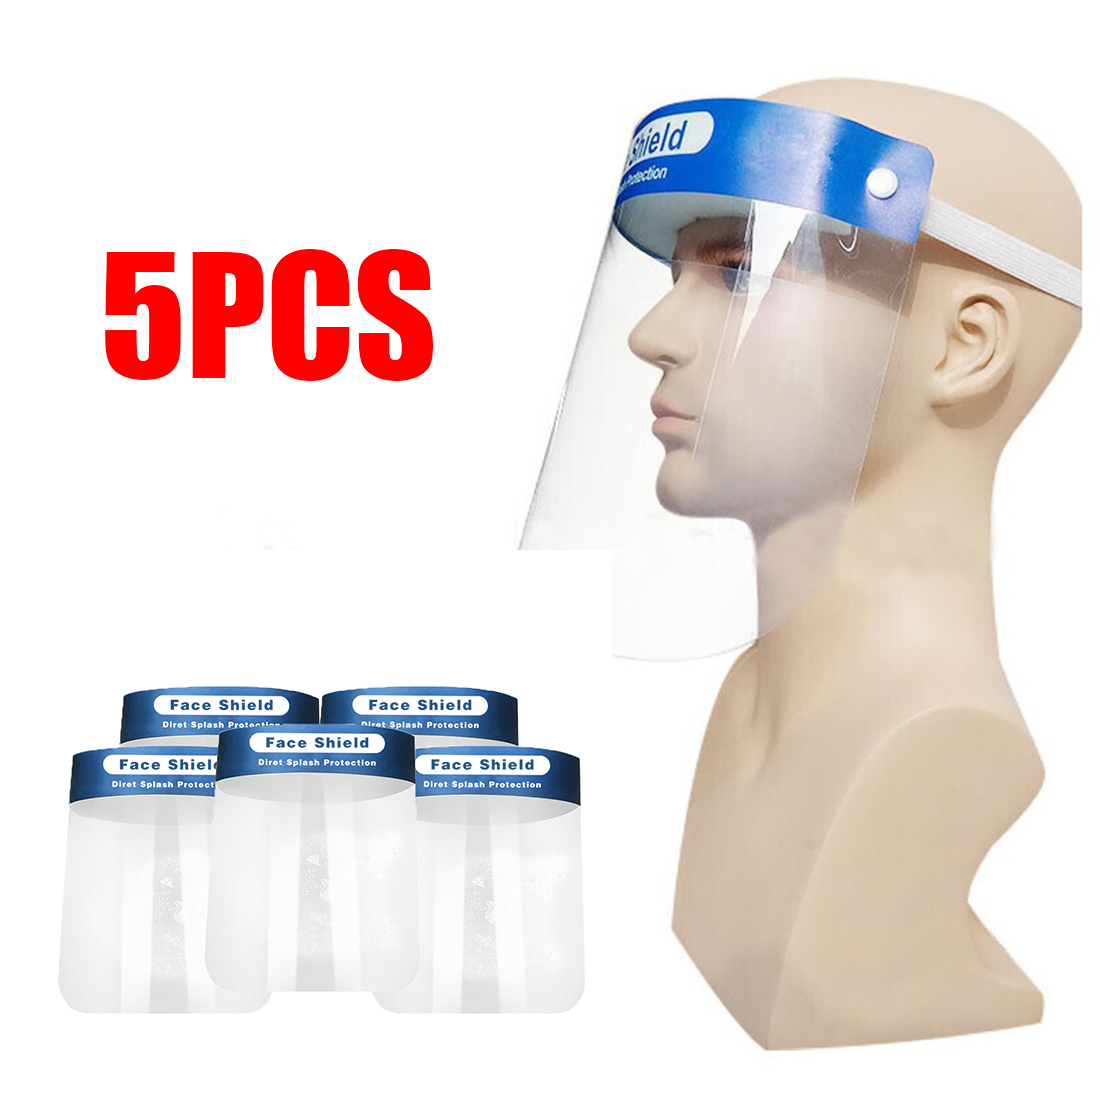 5 Pieces Safety Transparent Lens Protective Full Face Film Cover Adjustable Shield Plastic Anti-Fog Anti-Saliva Faceshield